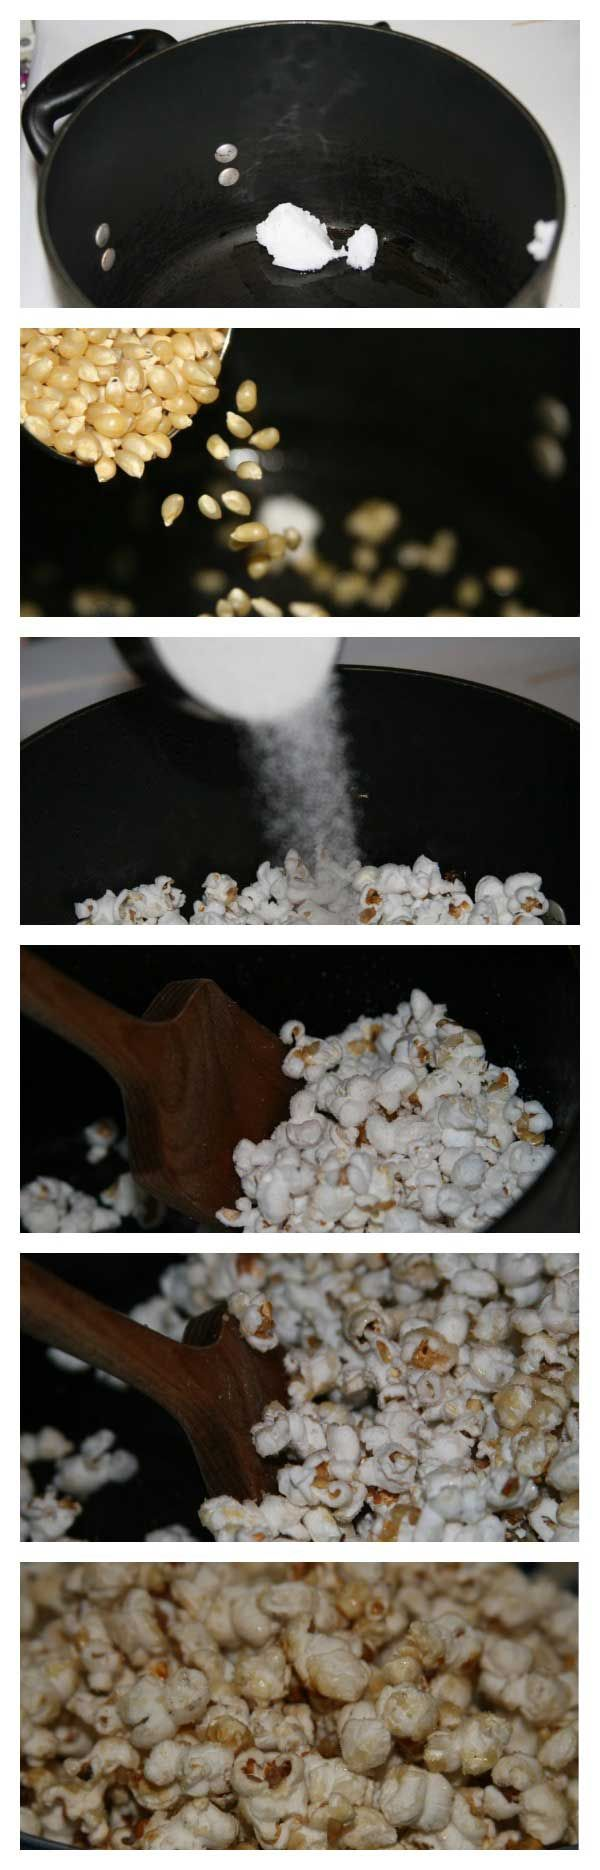 Tutorial on how to make homemade kettle corn, a very inexpensive snack for a crowd, adults or kids, illustrated with step-by-step photos. Easy frugal recipe.